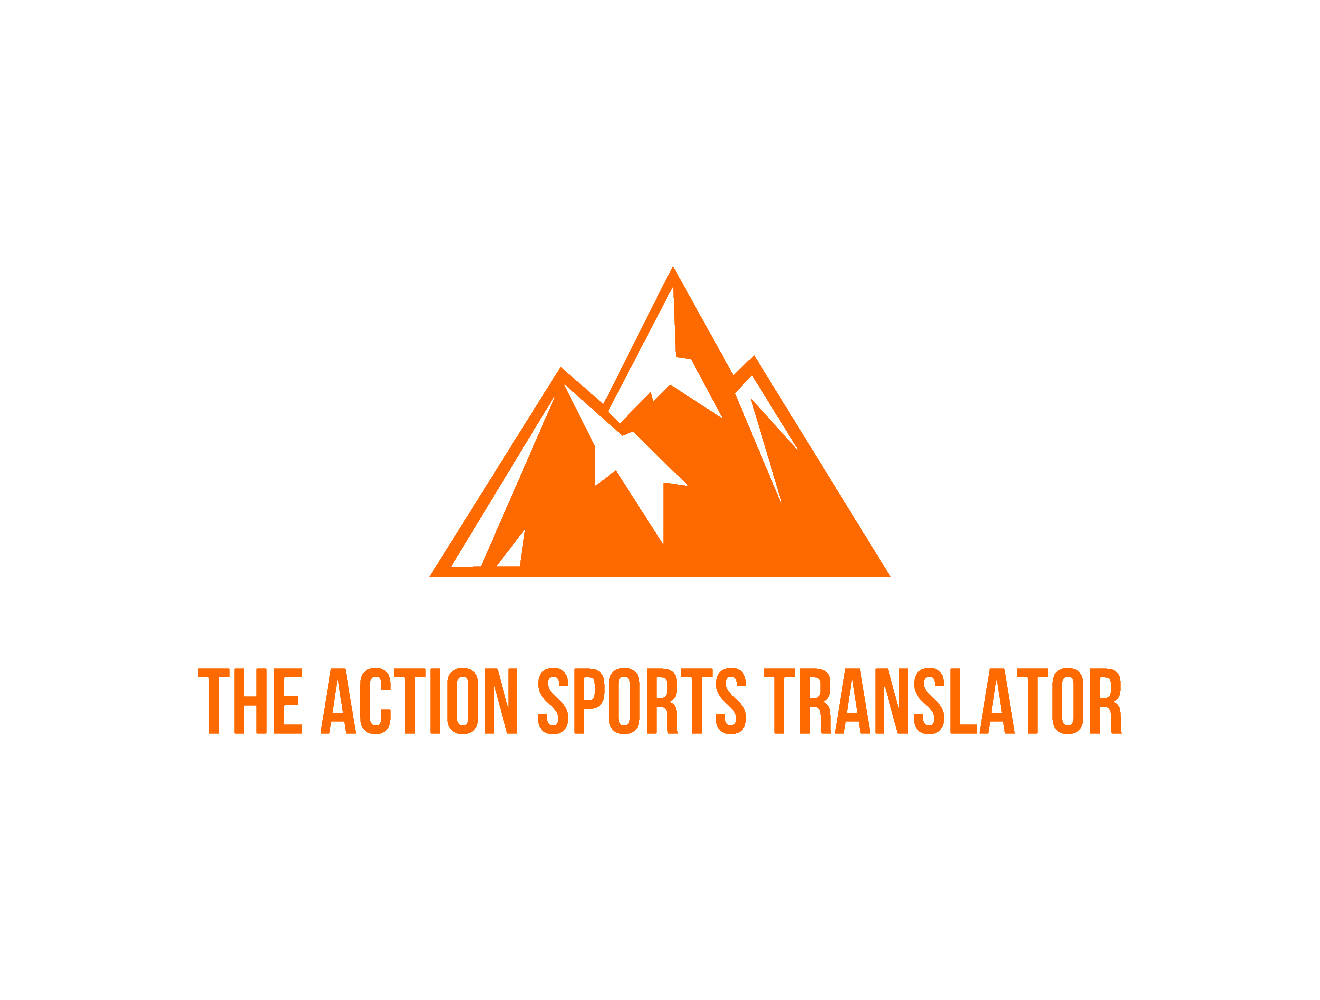 The Action Sports Translator